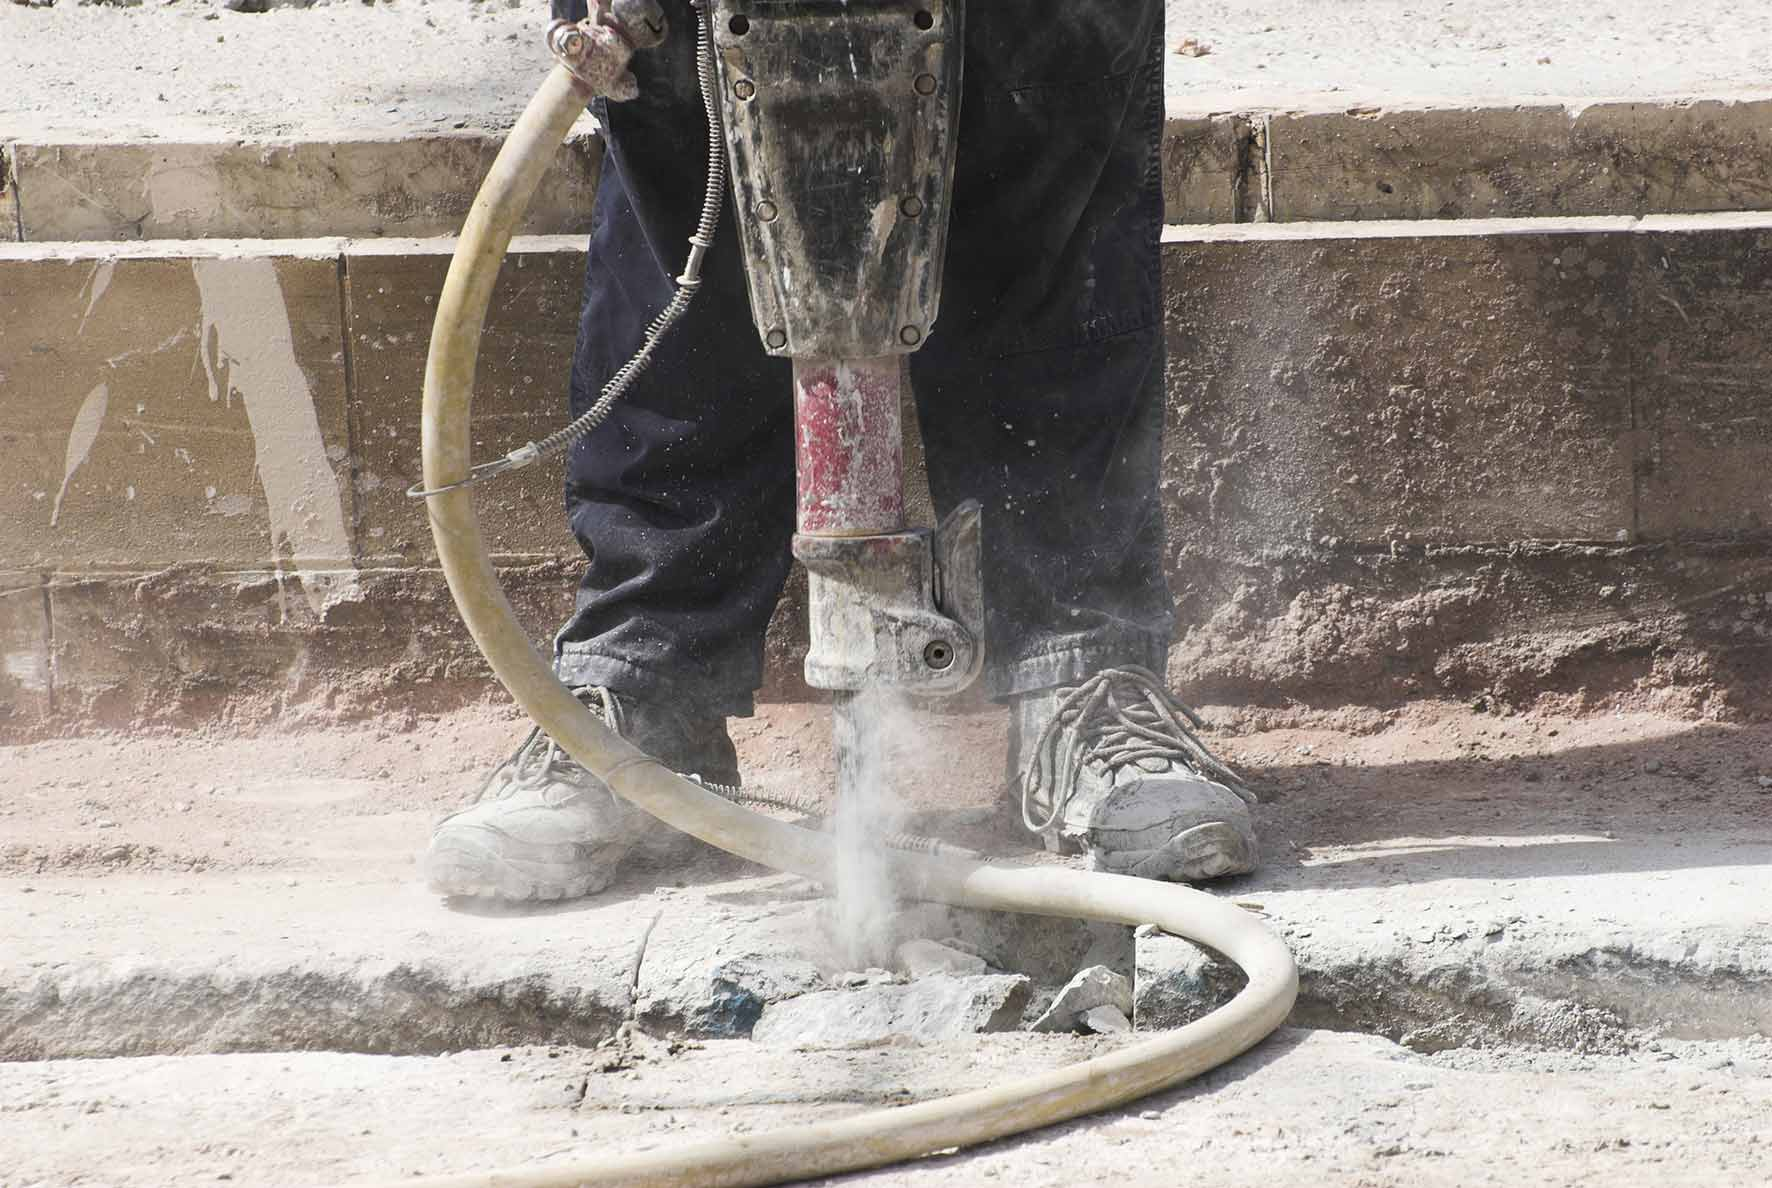 labourer using an electric drill to drill through pavement causing dust